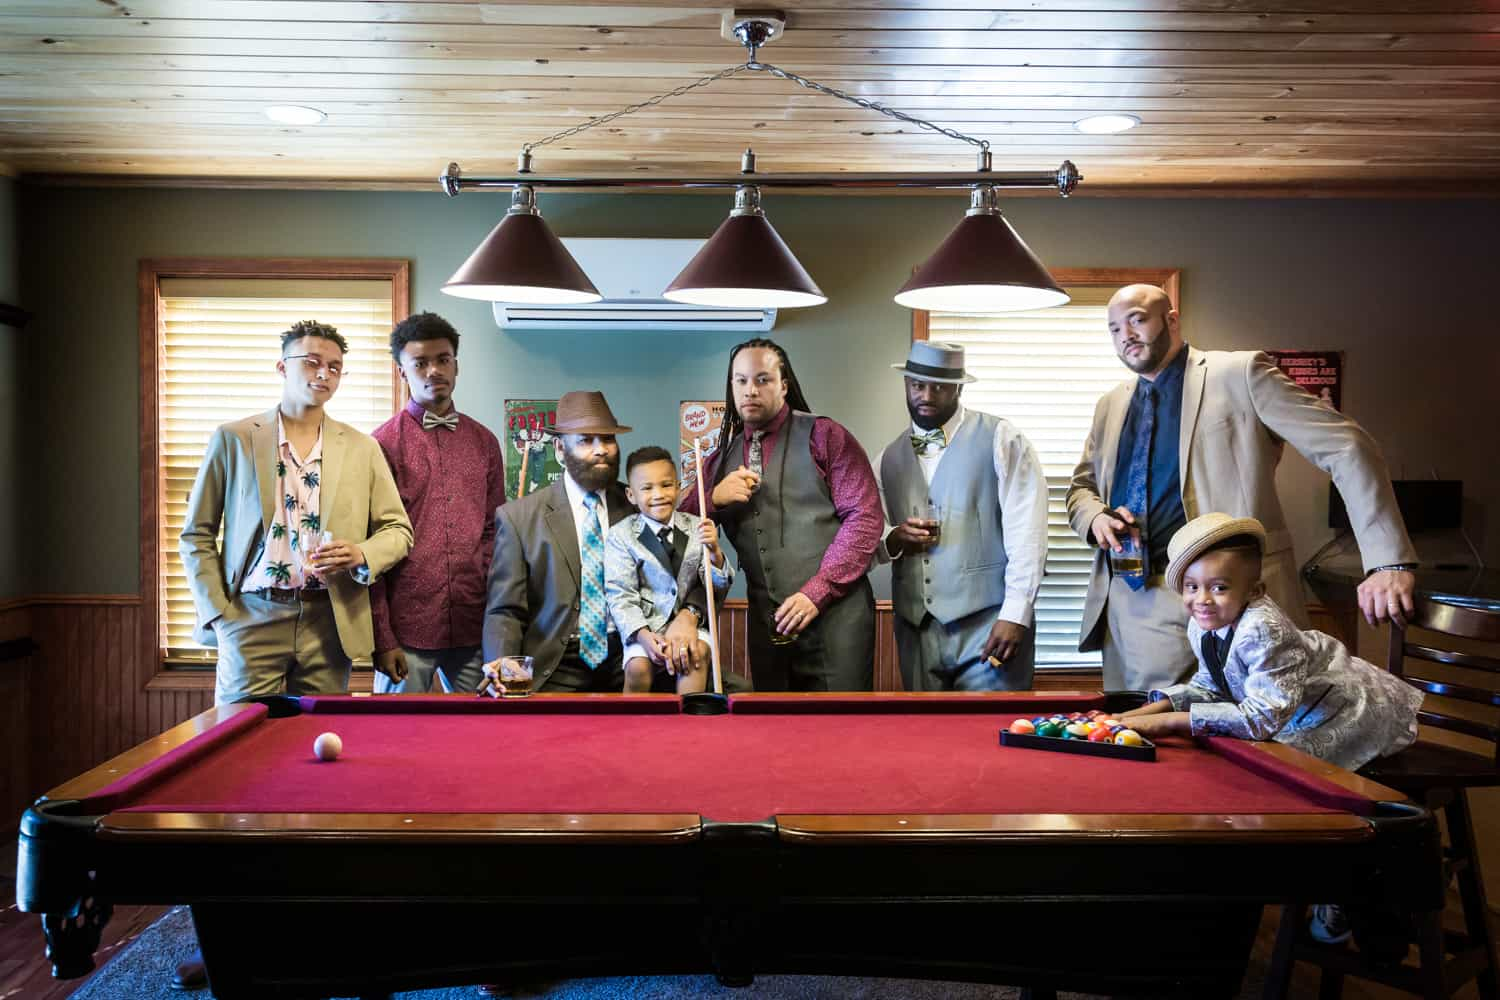 Male family members behind a pool table during a family reunion portrait